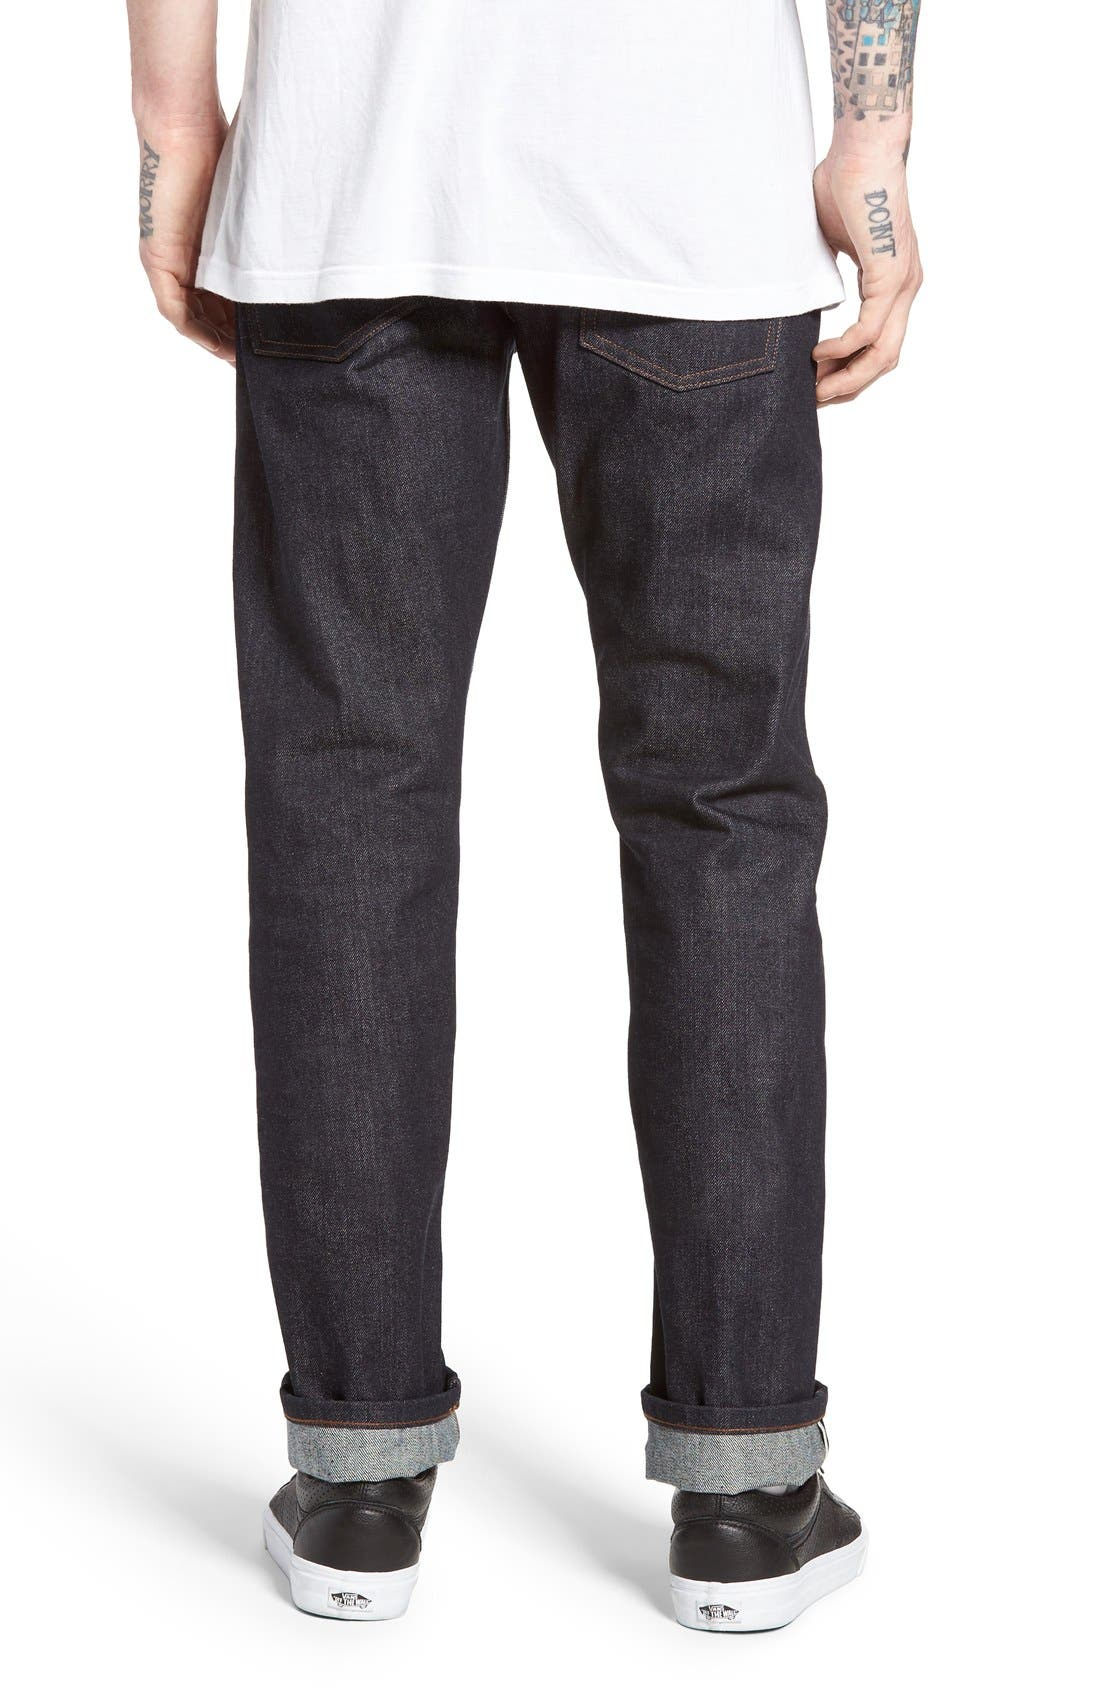 UB201 Tapered Fit Raw Selvedge Jeans,                             Alternate thumbnail 10, color,                             INDIGO